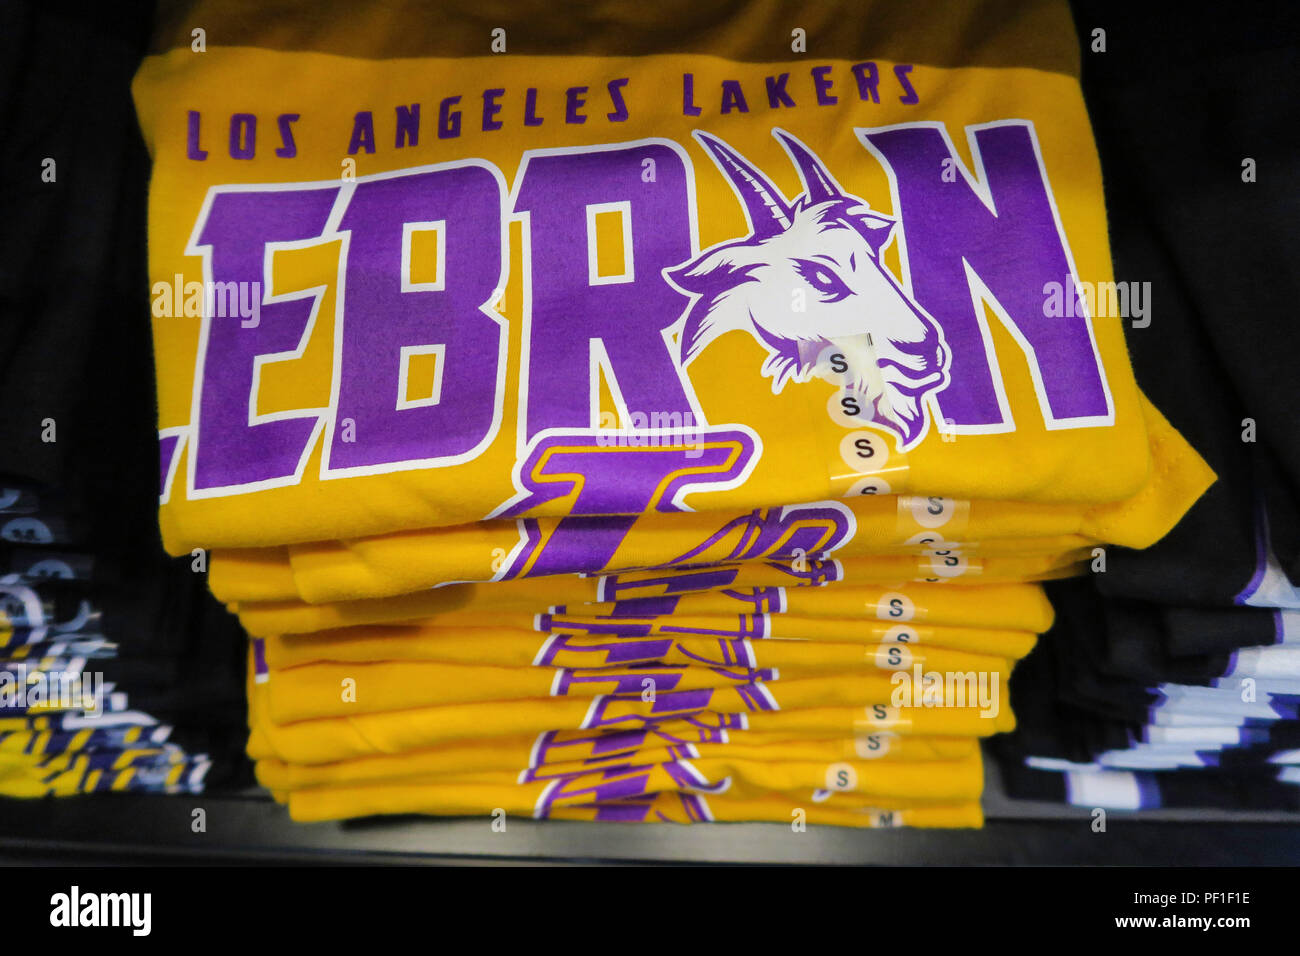 reputable site f47da 66470 Lebron James and Lakers Branded Merchandise at the NBA Store ...